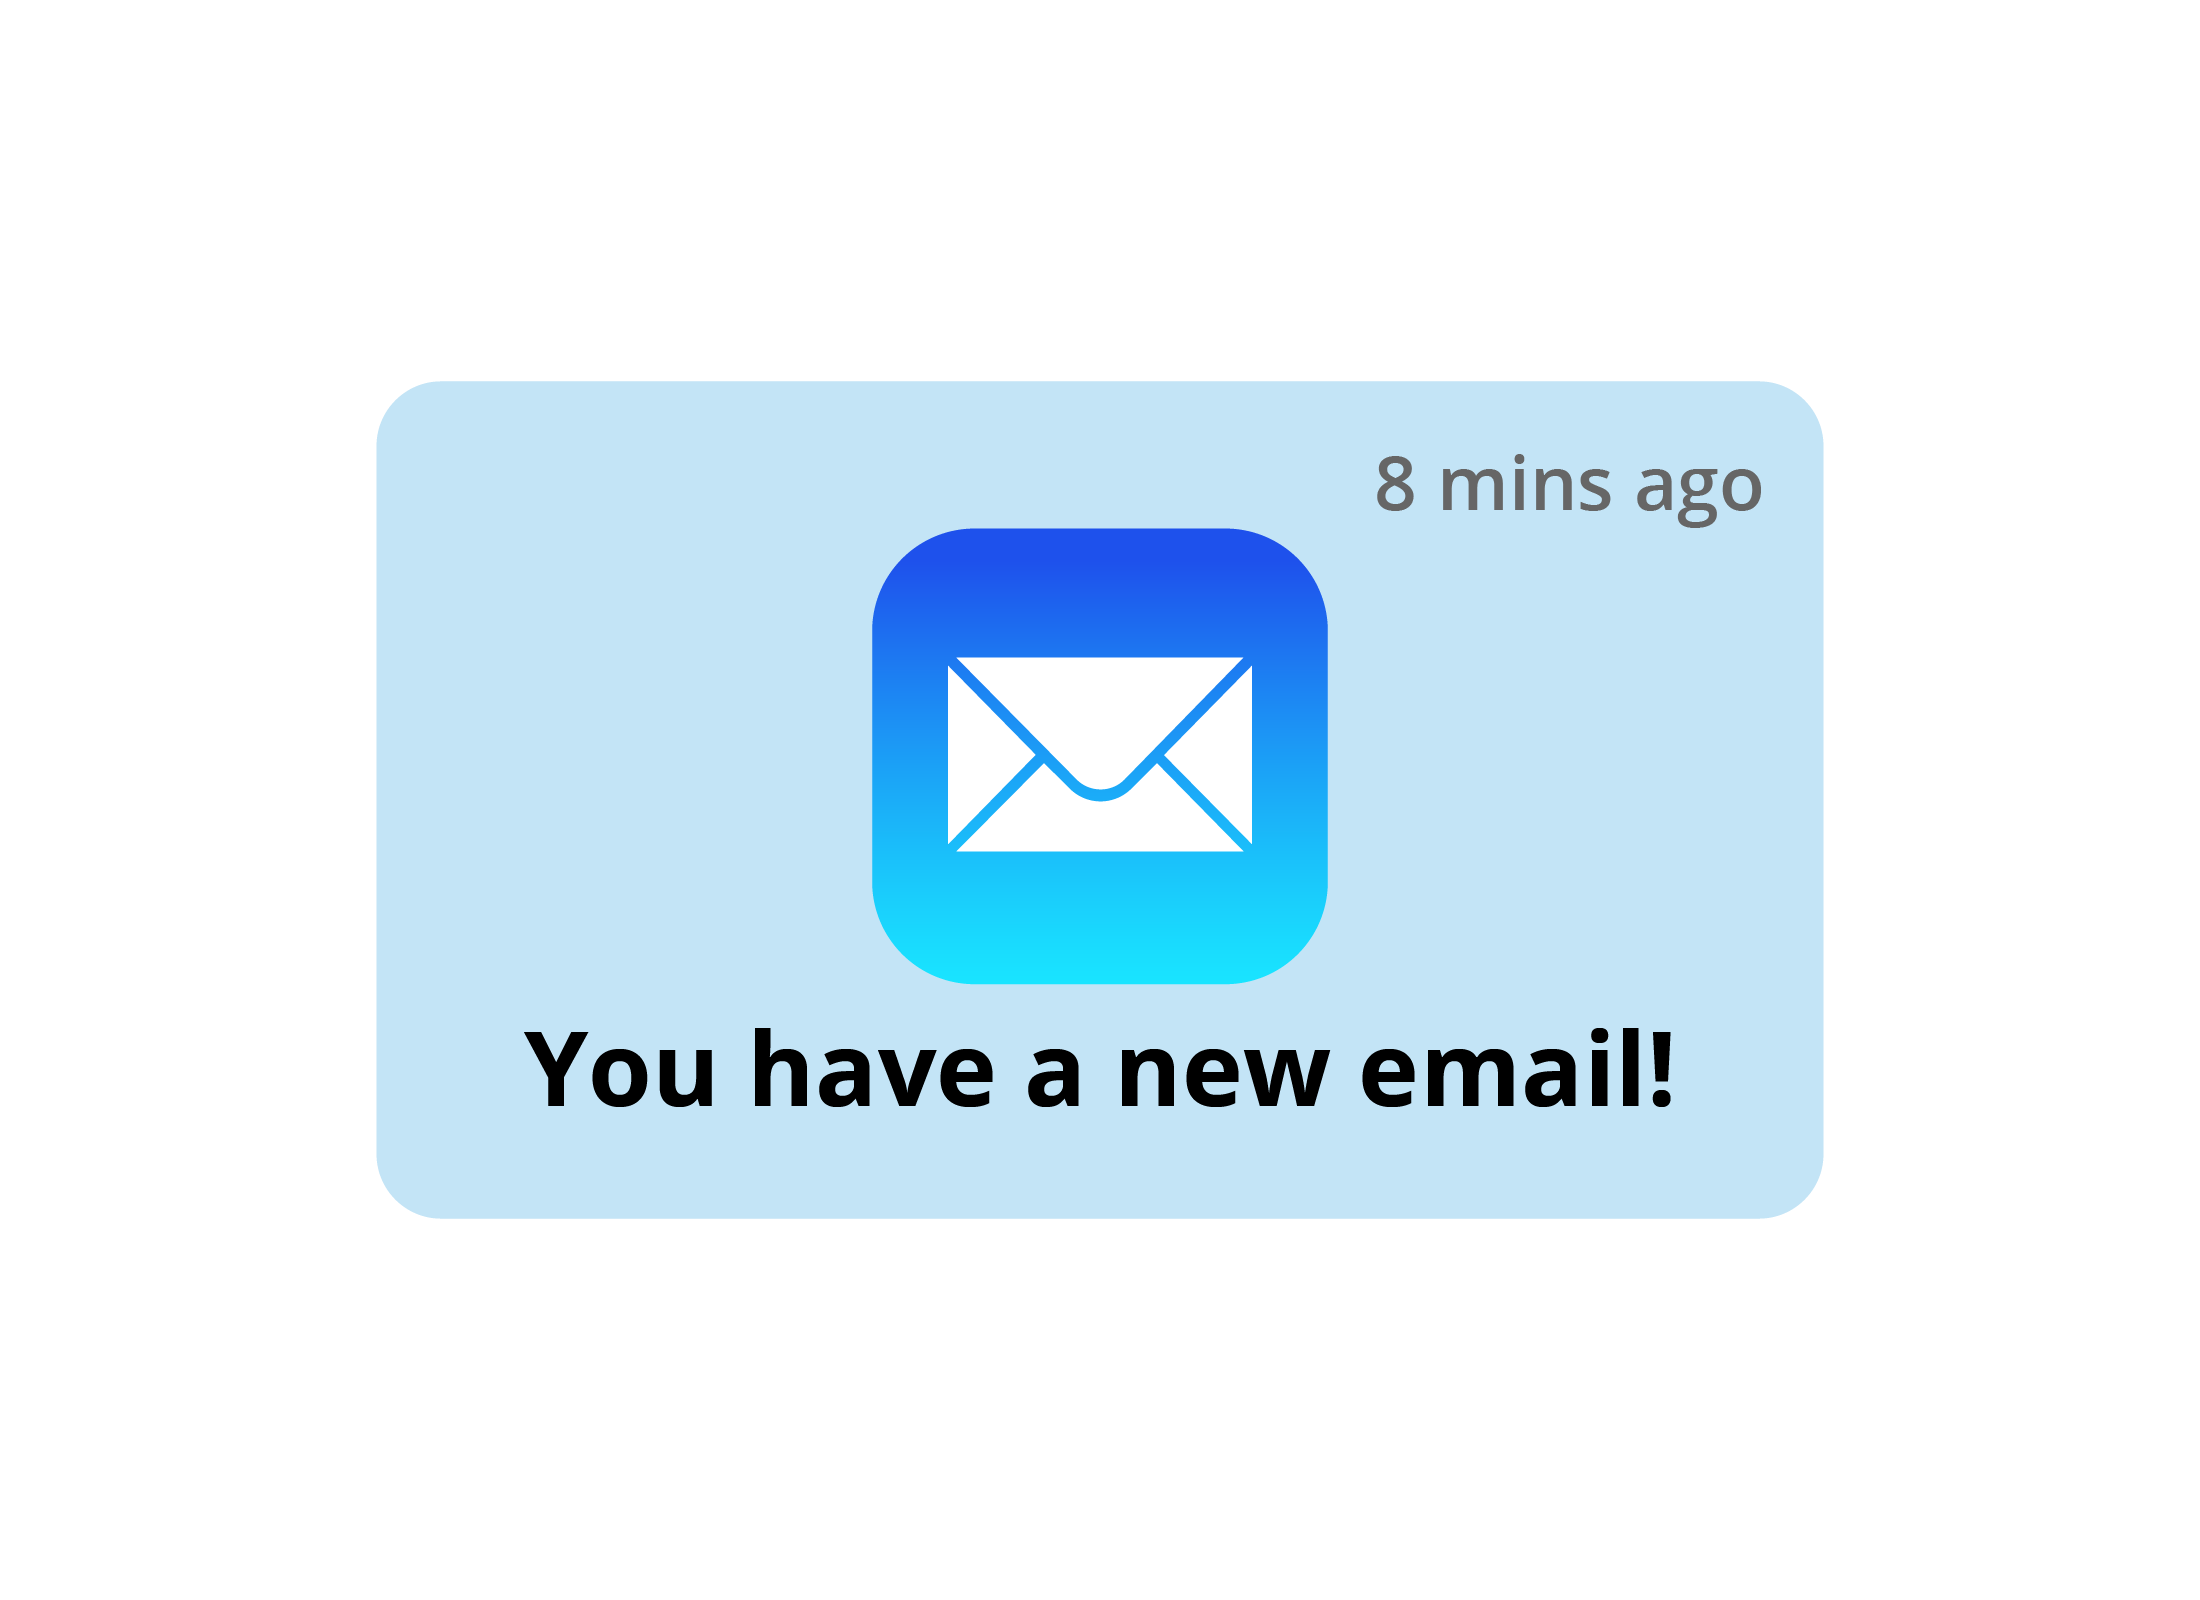 A zoomed-in view of a 'you have a new email' notification on smartphone screen